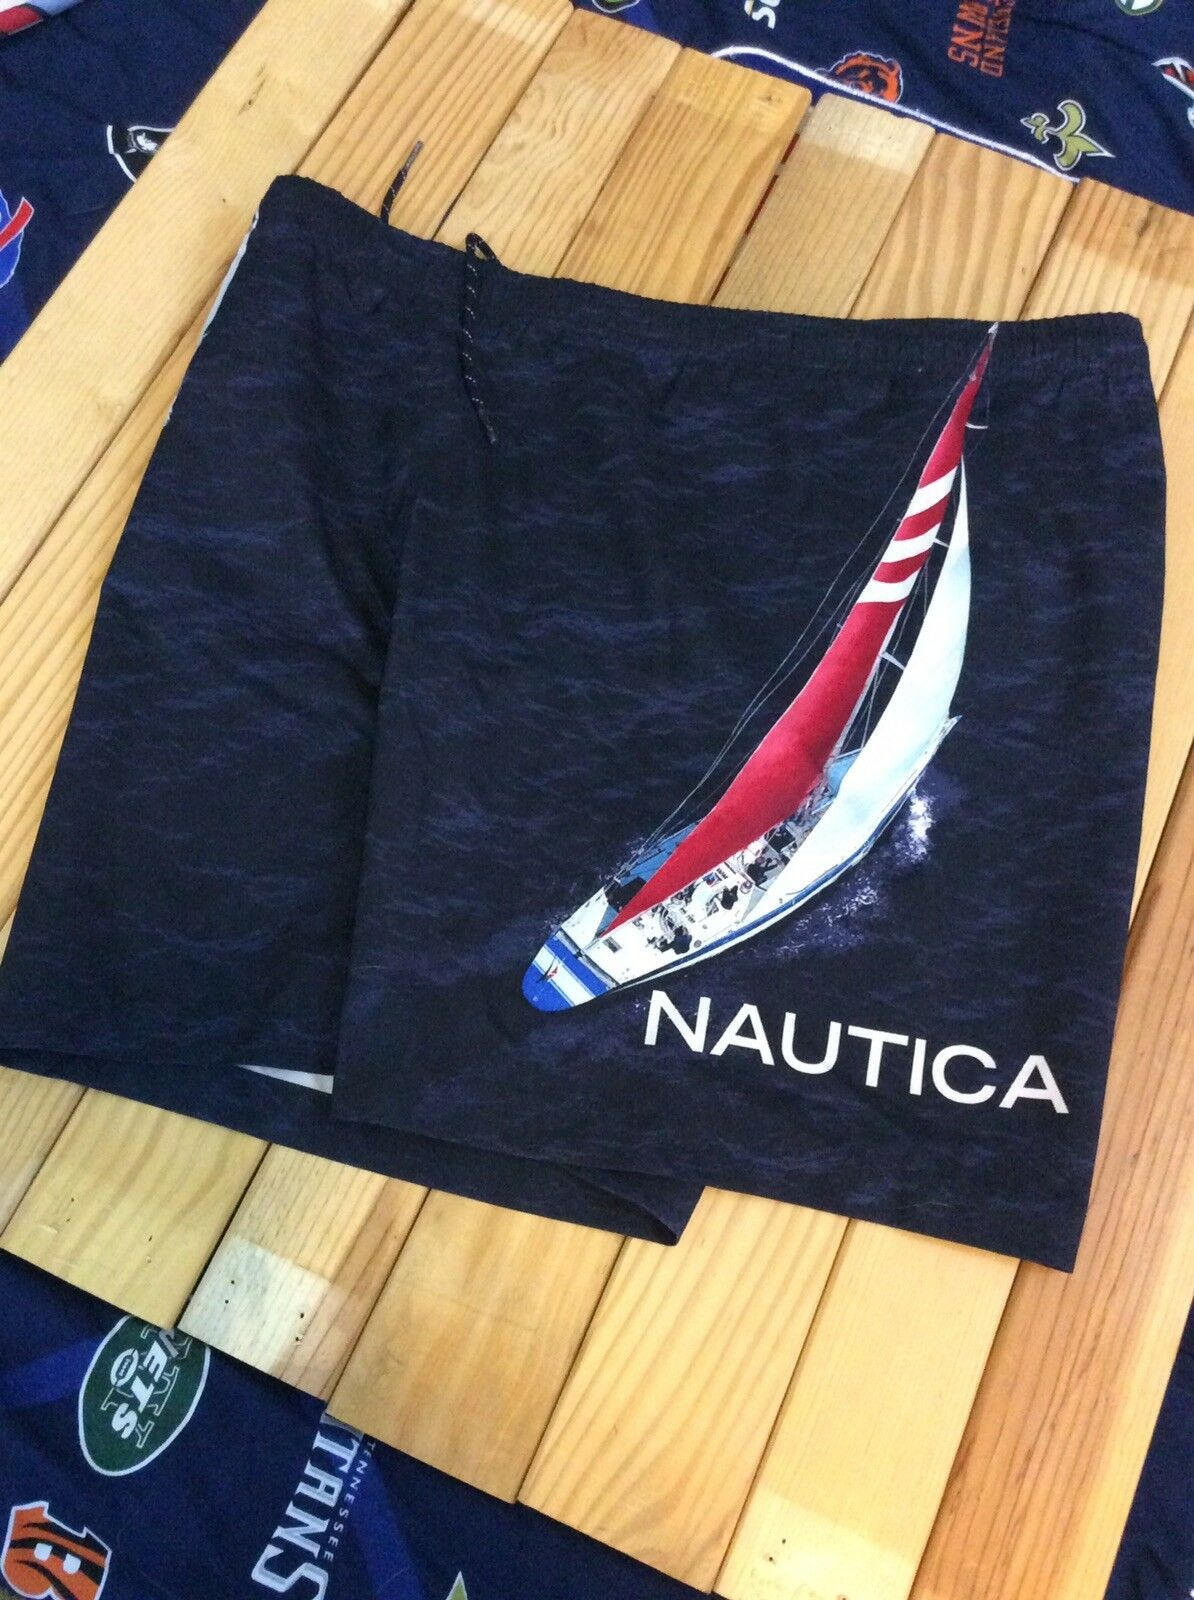 195a2d942f Nautica Swim Trunks Shorts Adult Large bluee Spell Out Shorts 90s Baggie  VINTAGE ooewxt3643-Swimwear